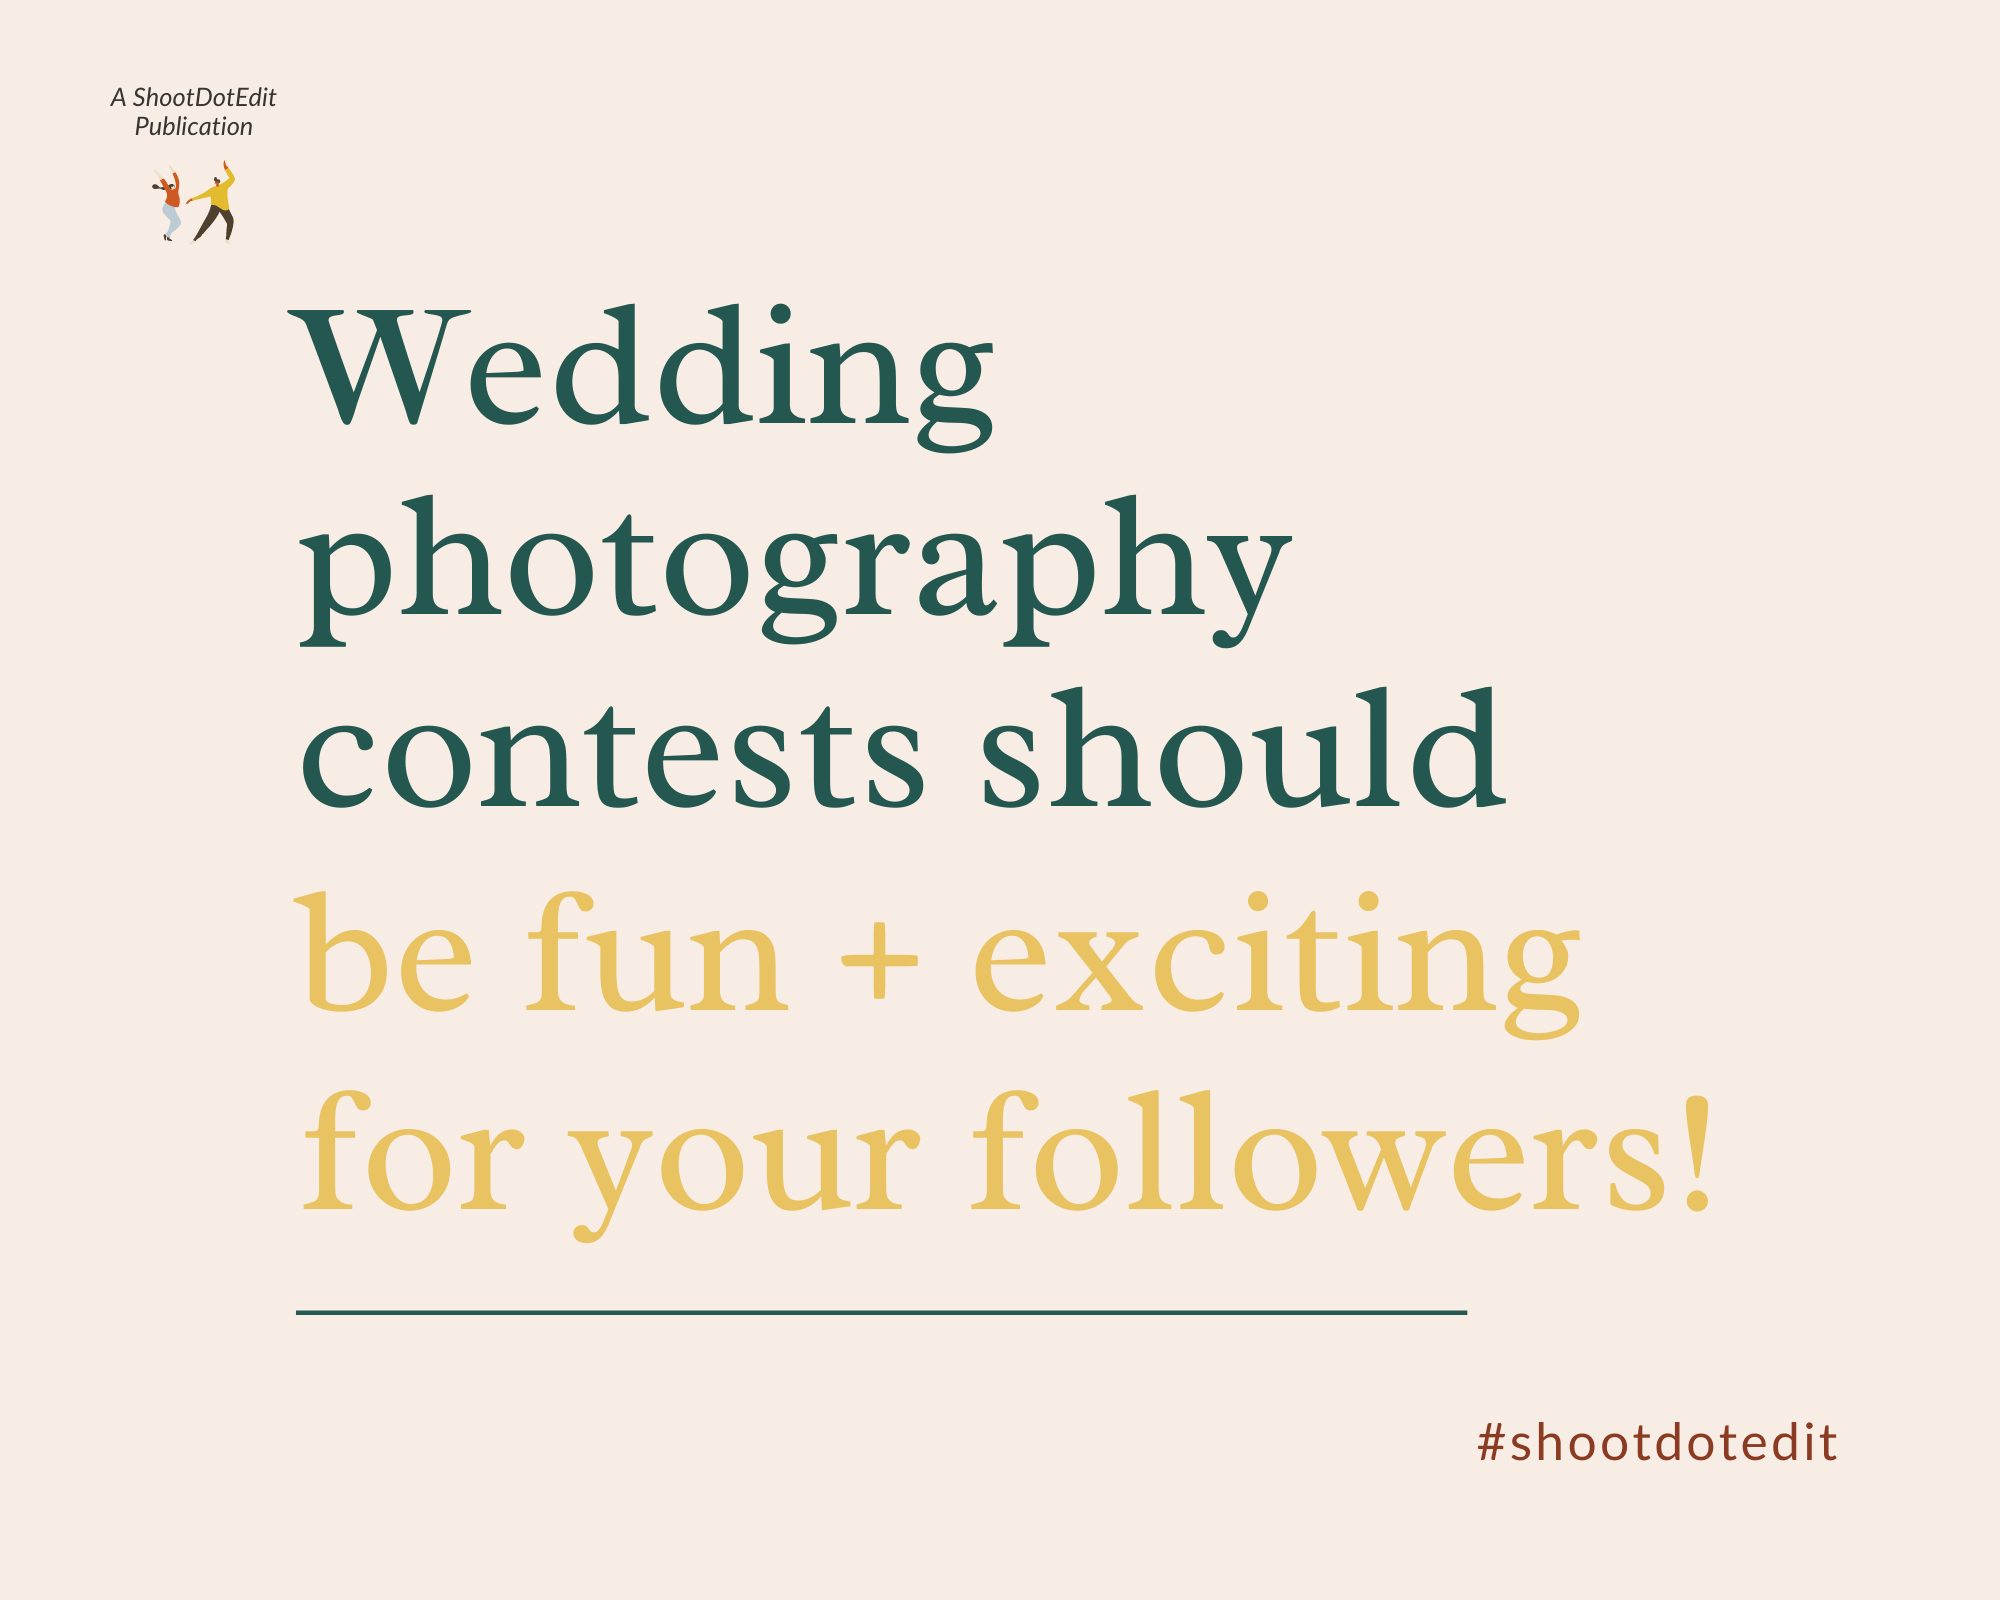 Infographic stating wedding photography contests should be fun and exciting for your followers